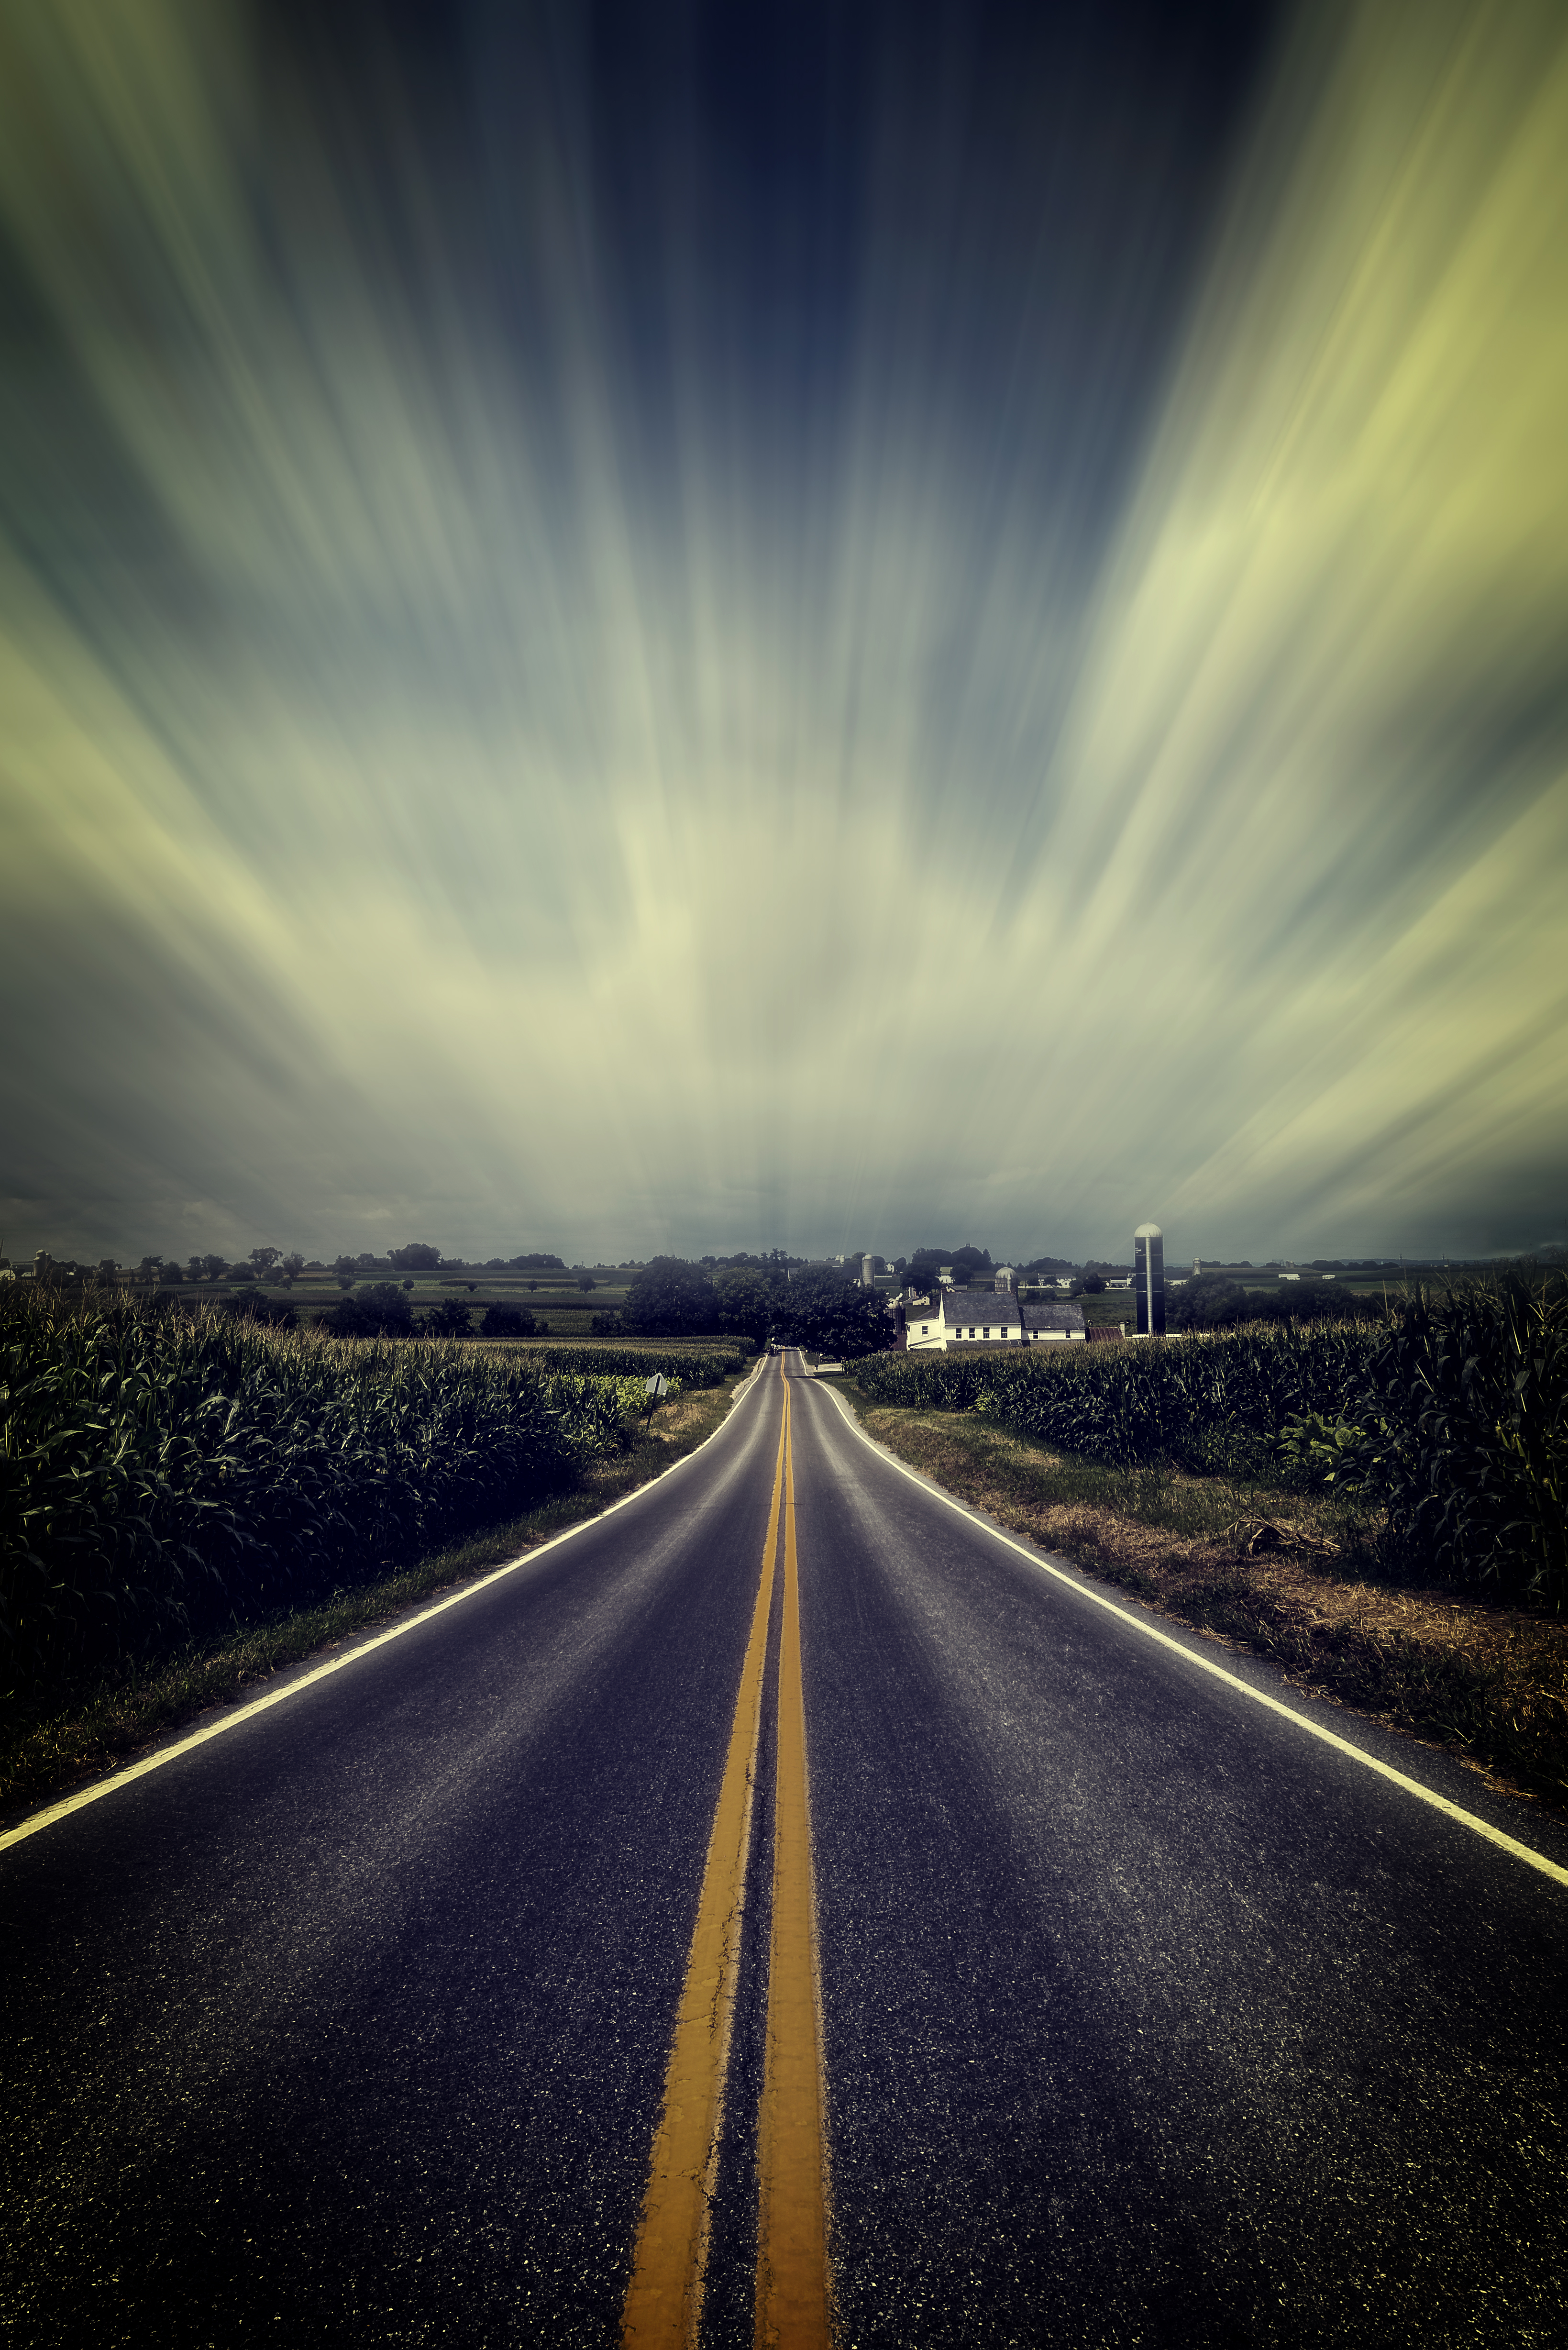 The Road by Frank Grace